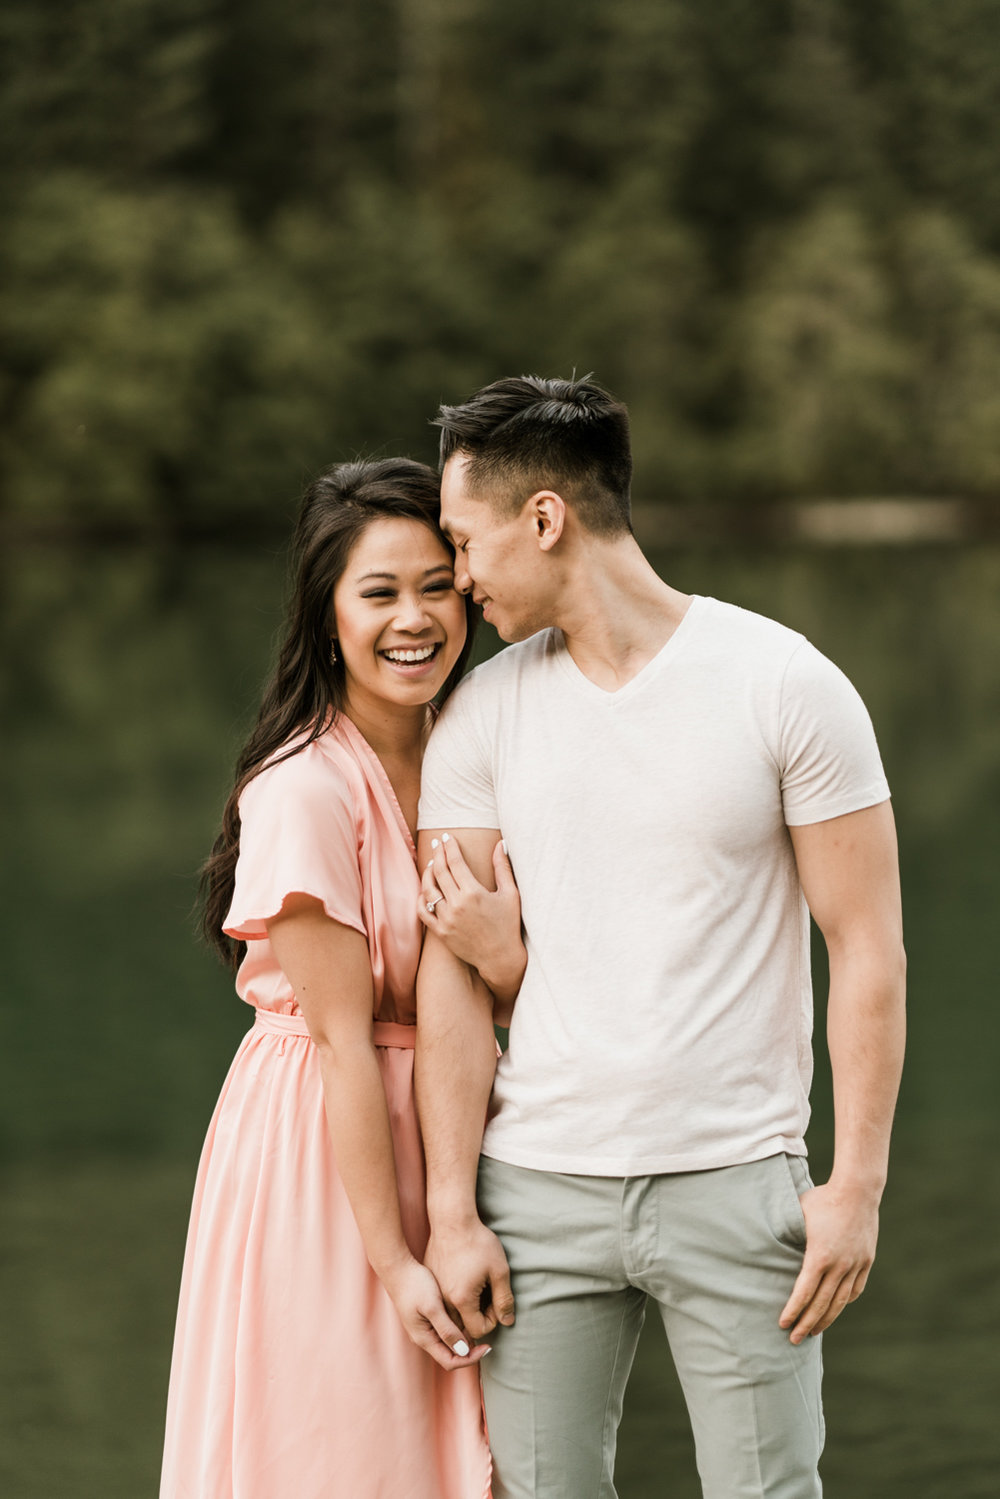 April Yentas Photography - Anh Thu & Hoan-16.jpg